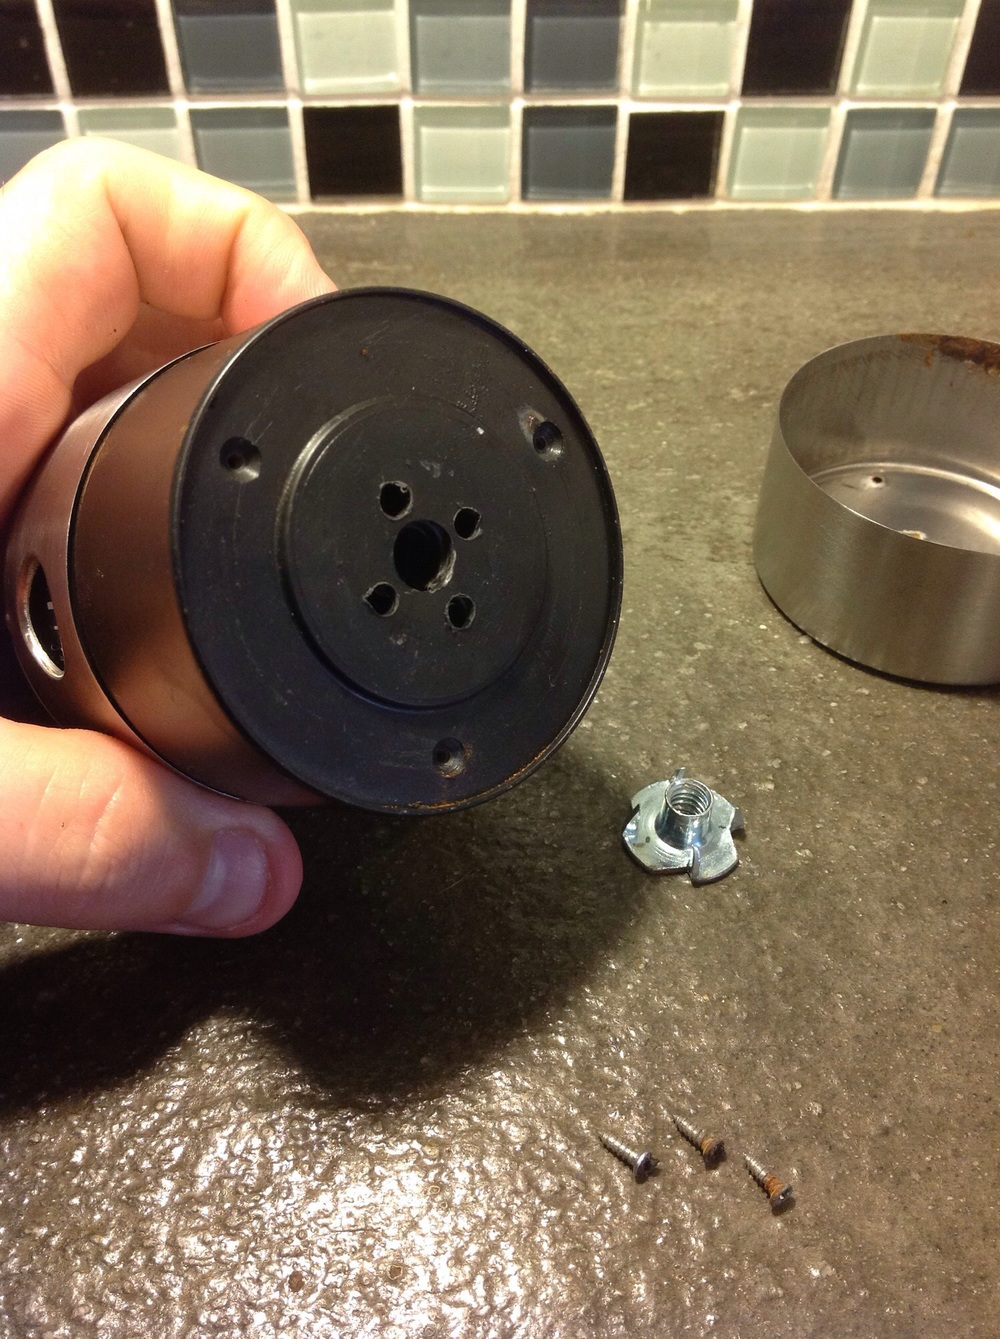 Buy a 1/4-20 T-nut from your local hardware store. This is the same thread as a standard tripod base. Line up the T-nut with the center of the timer. Drill a large hole in the center of the plastic timer body, then drill four smaller holes around it that will line up with the spikes on the T-nut.